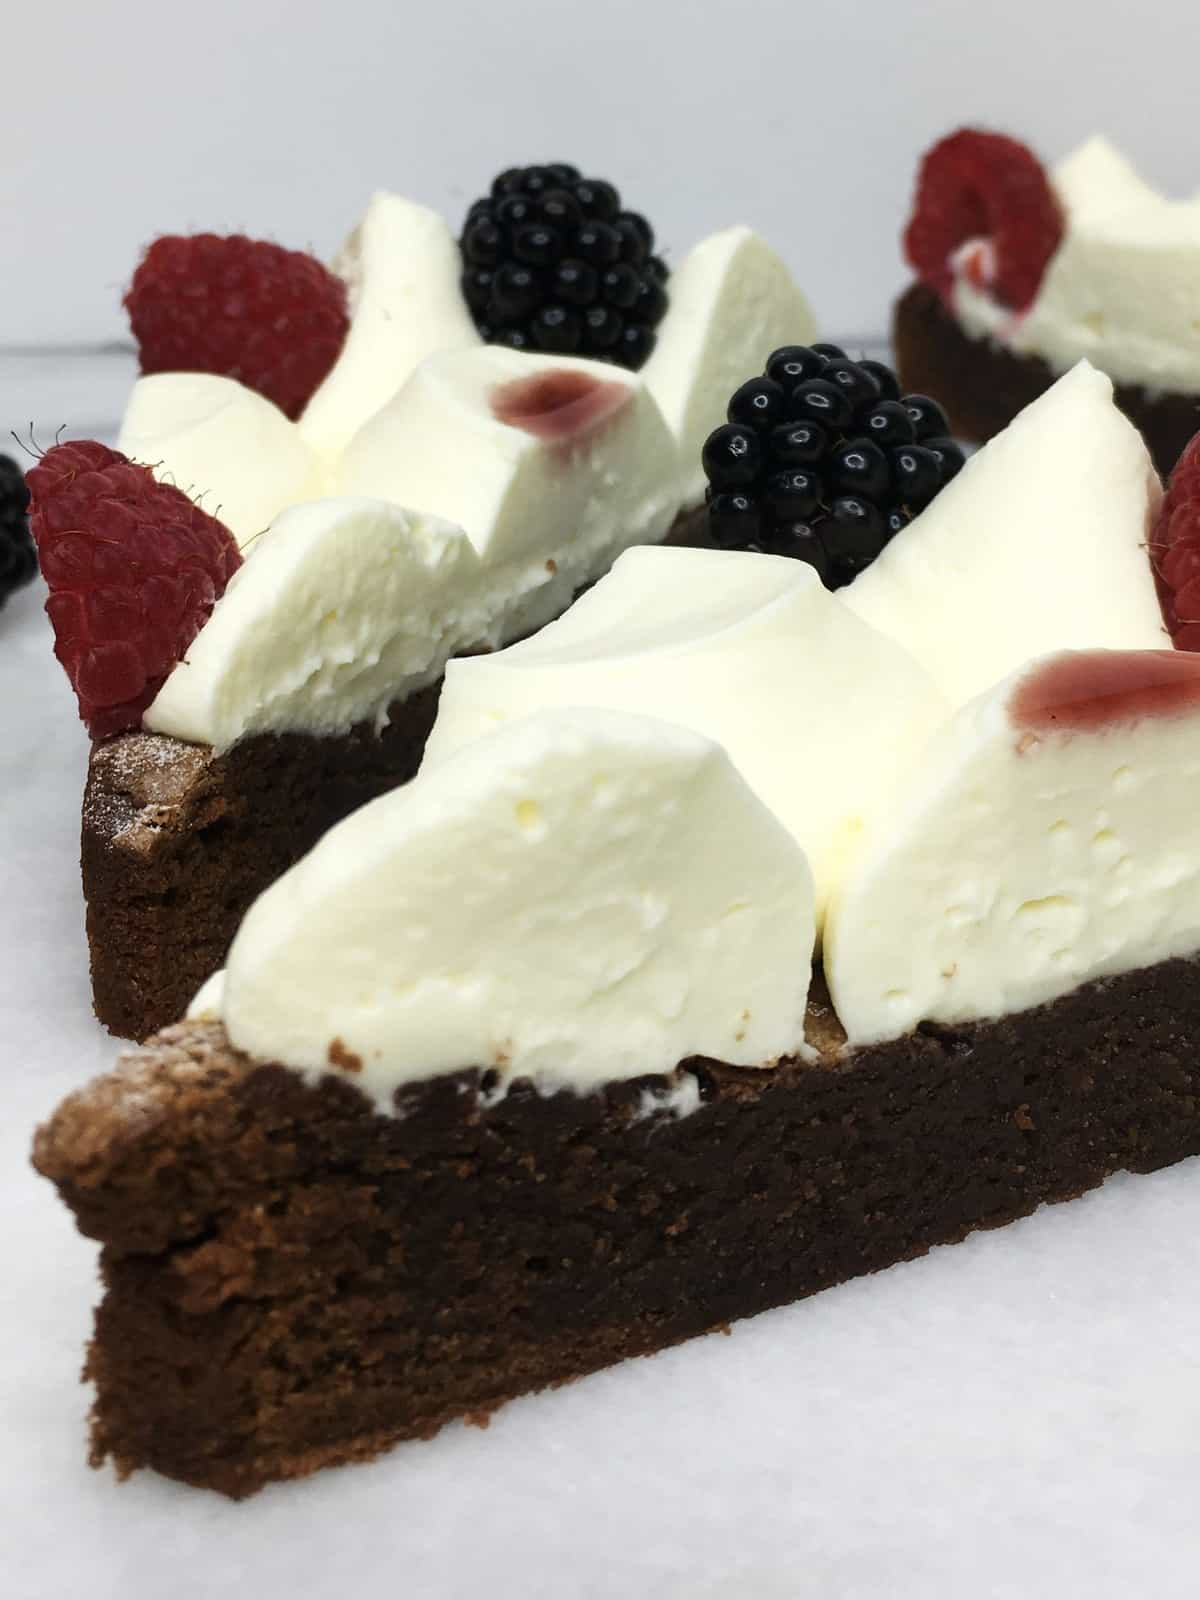 A couple of brownies decorated with cream and fresh fruits on a marble board